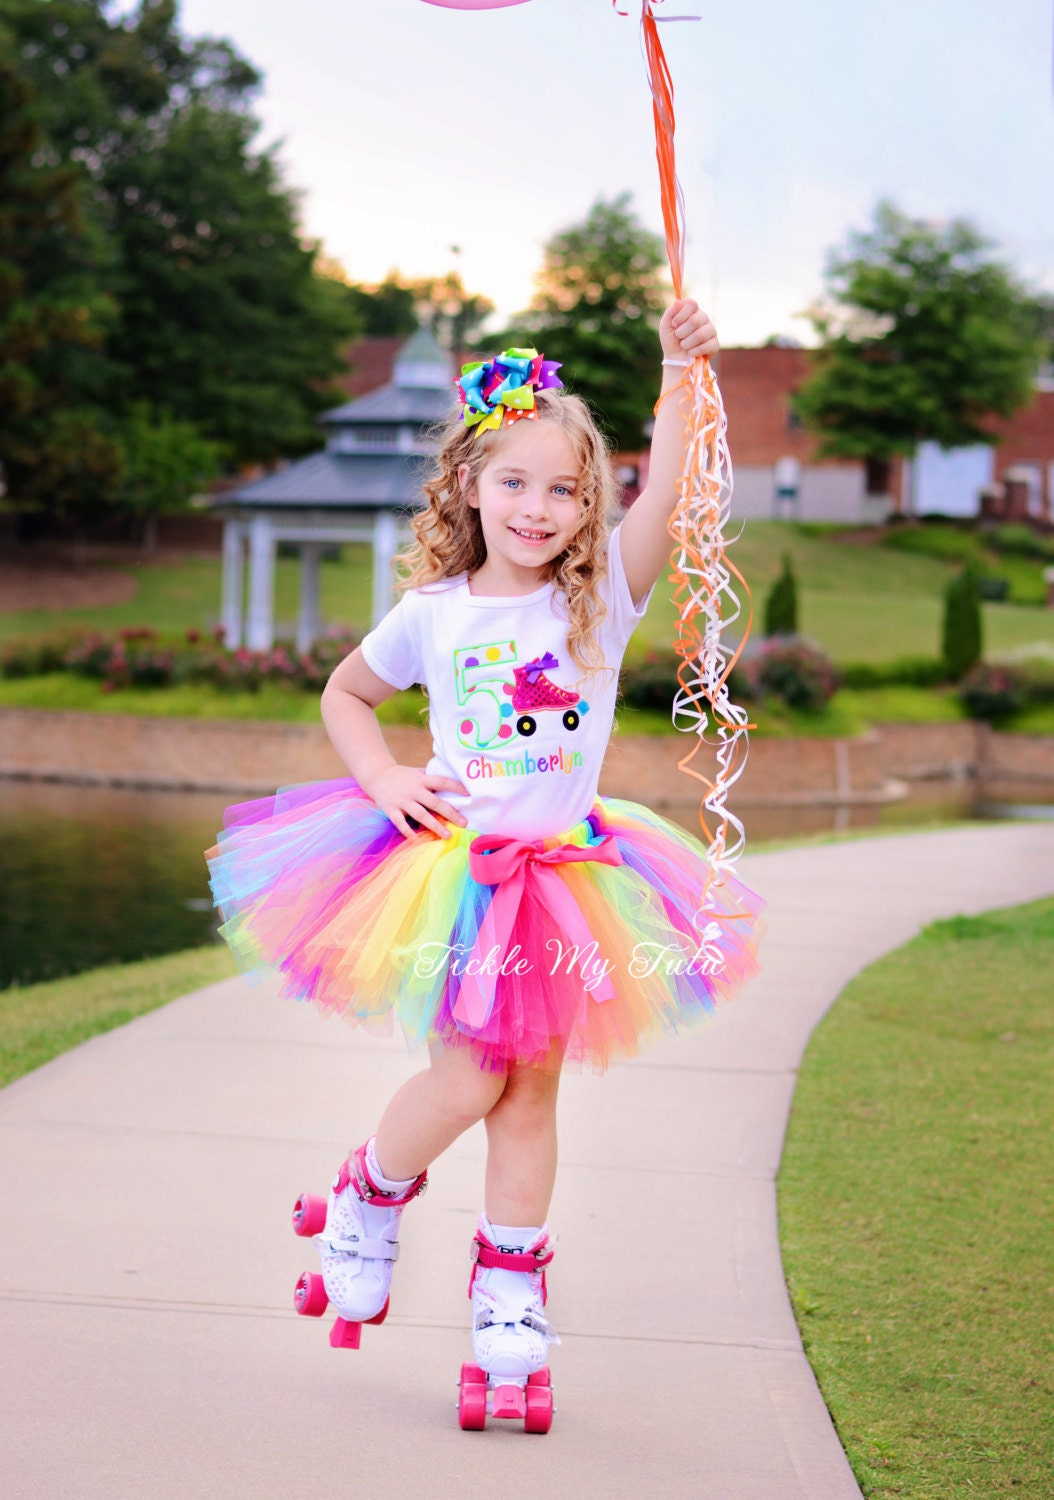 exceptional roller skating party outfits ideas